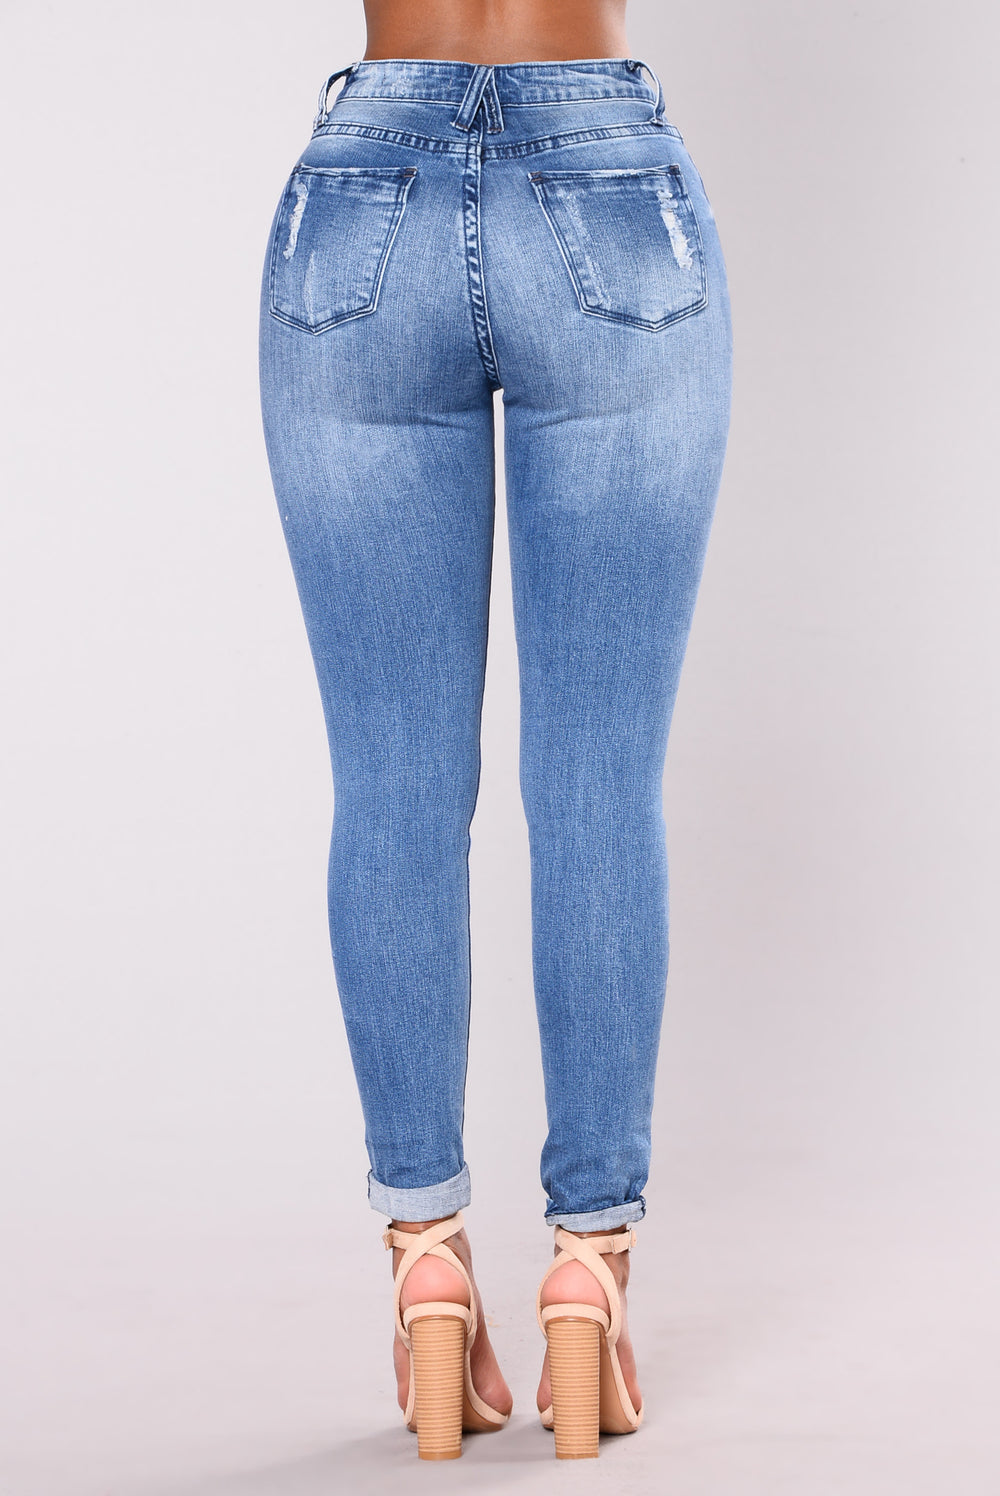 Give Me Your Attention Skinny Jeans - Medium